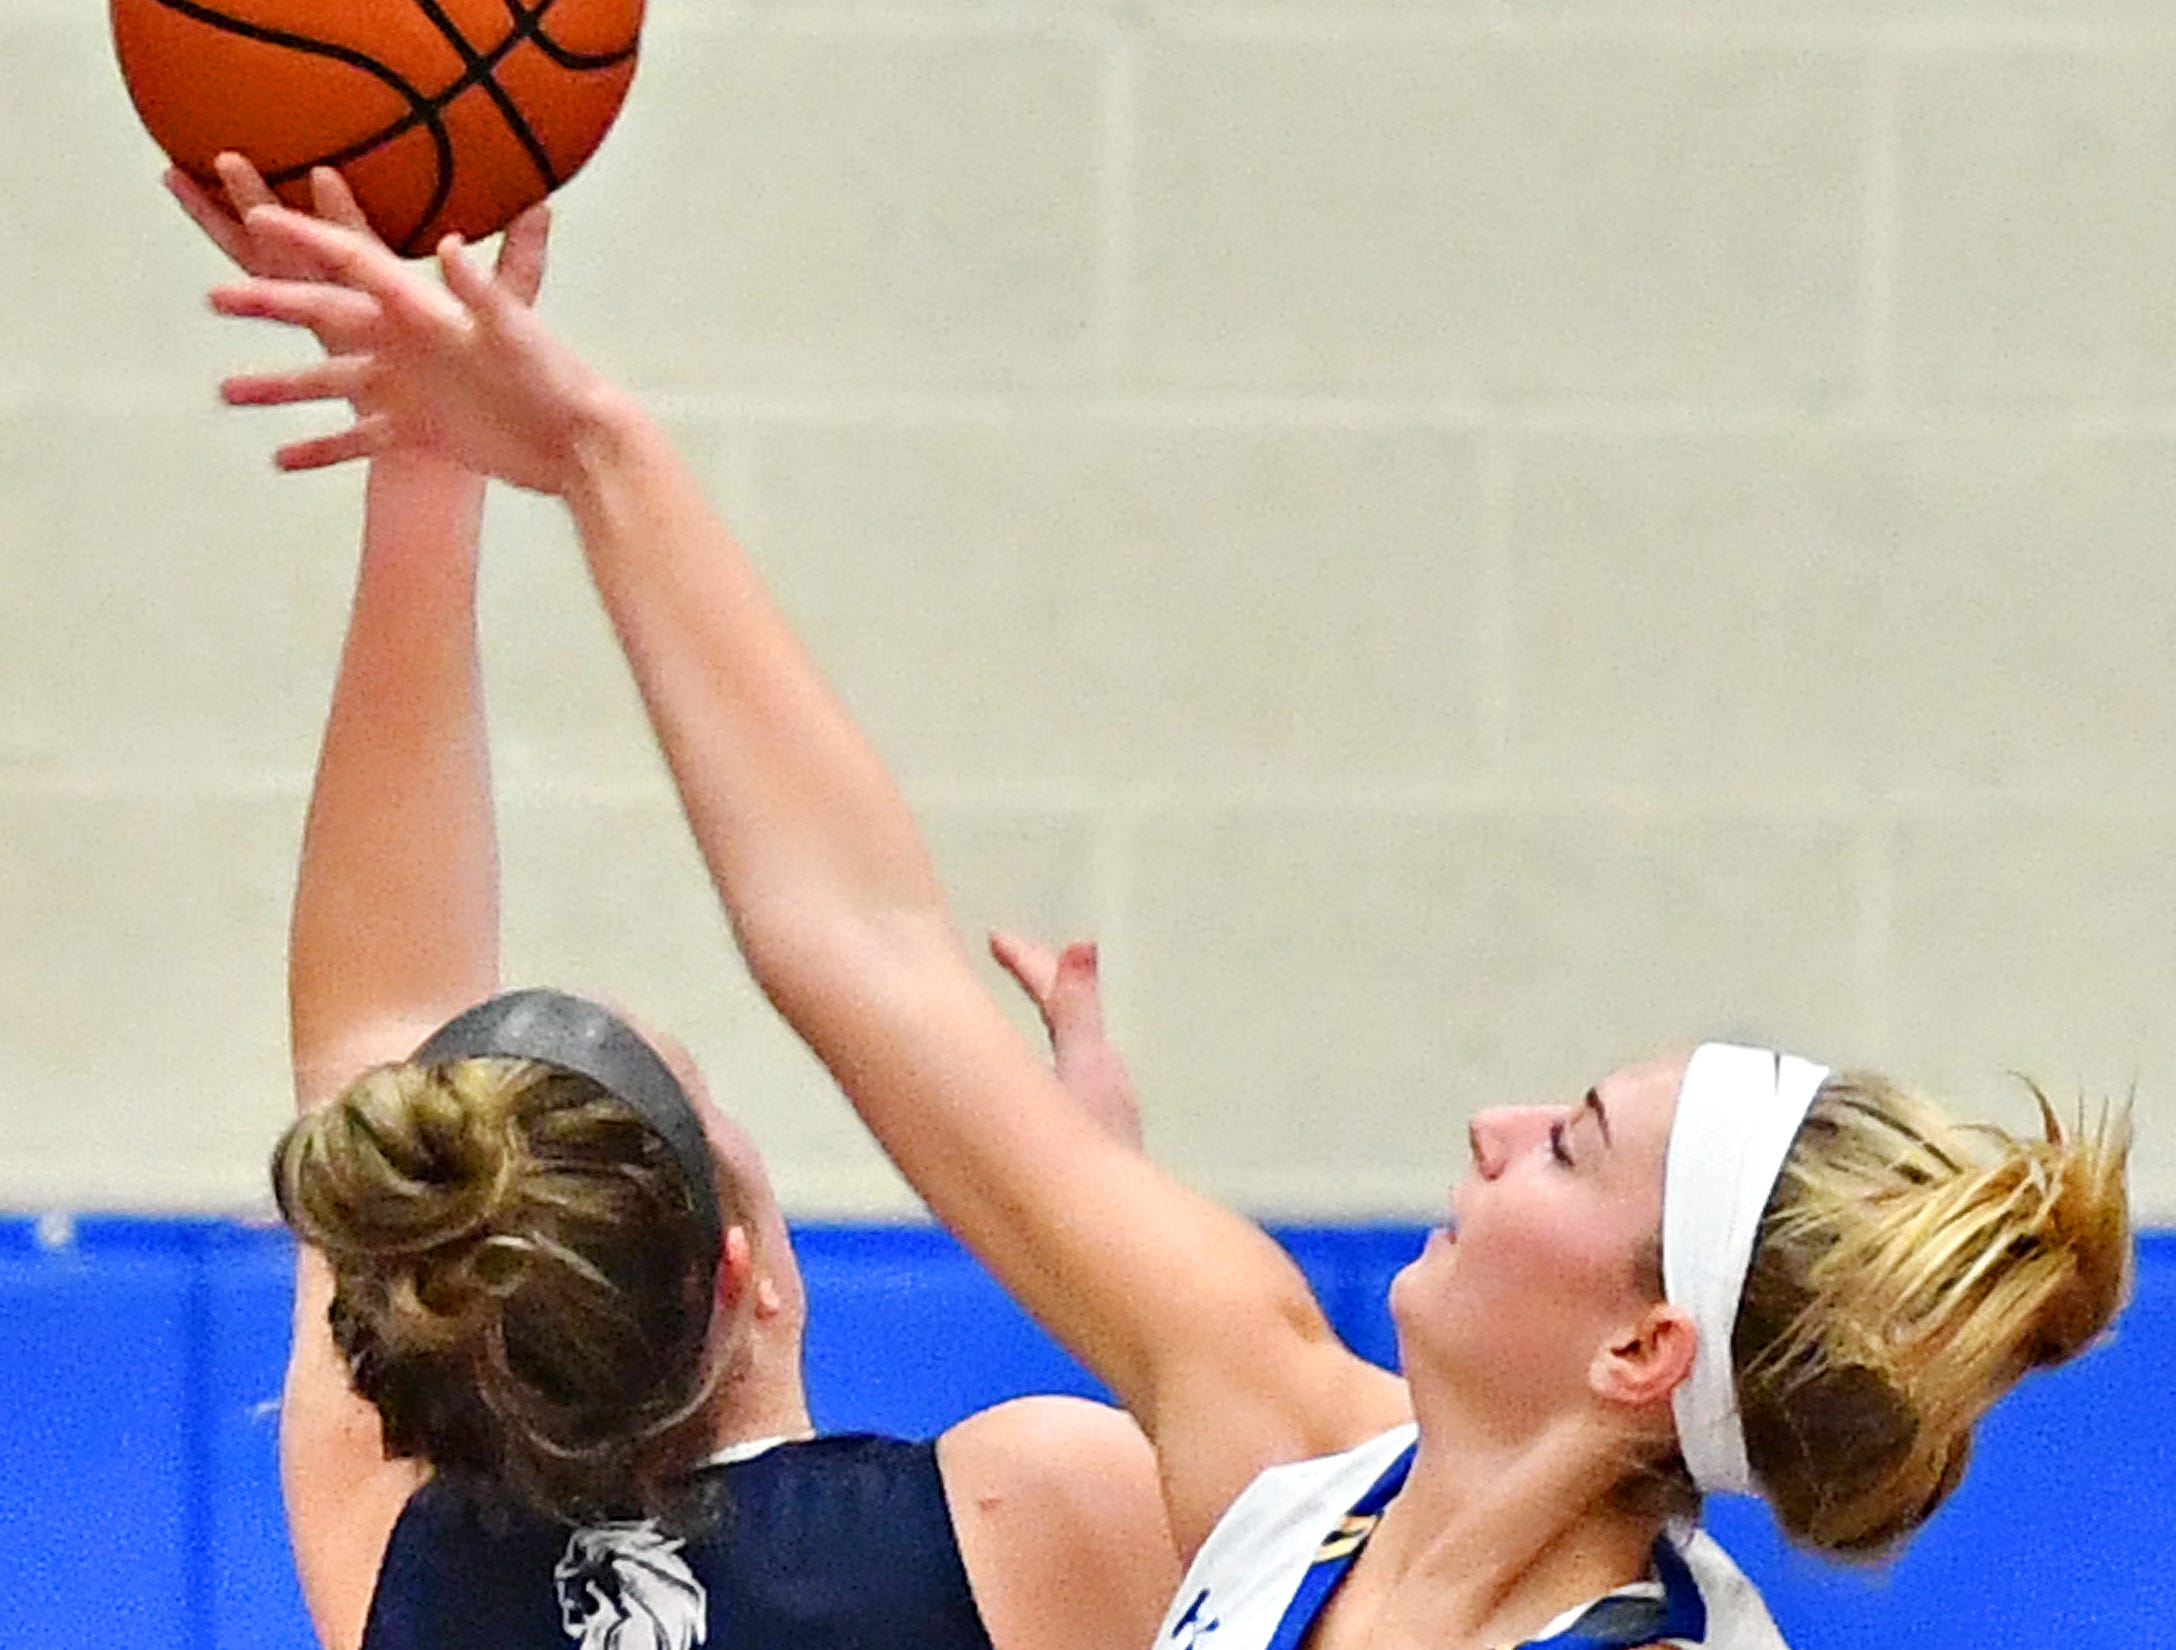 Kennard-Dale vs Camp Hill during girls' basketball action at Kennard-Dale High School in Fawn Grove, Wednesday, Dec. 12, 2018. Kennard-Dale would win the game 47-28. Dawn J. Sagert photo